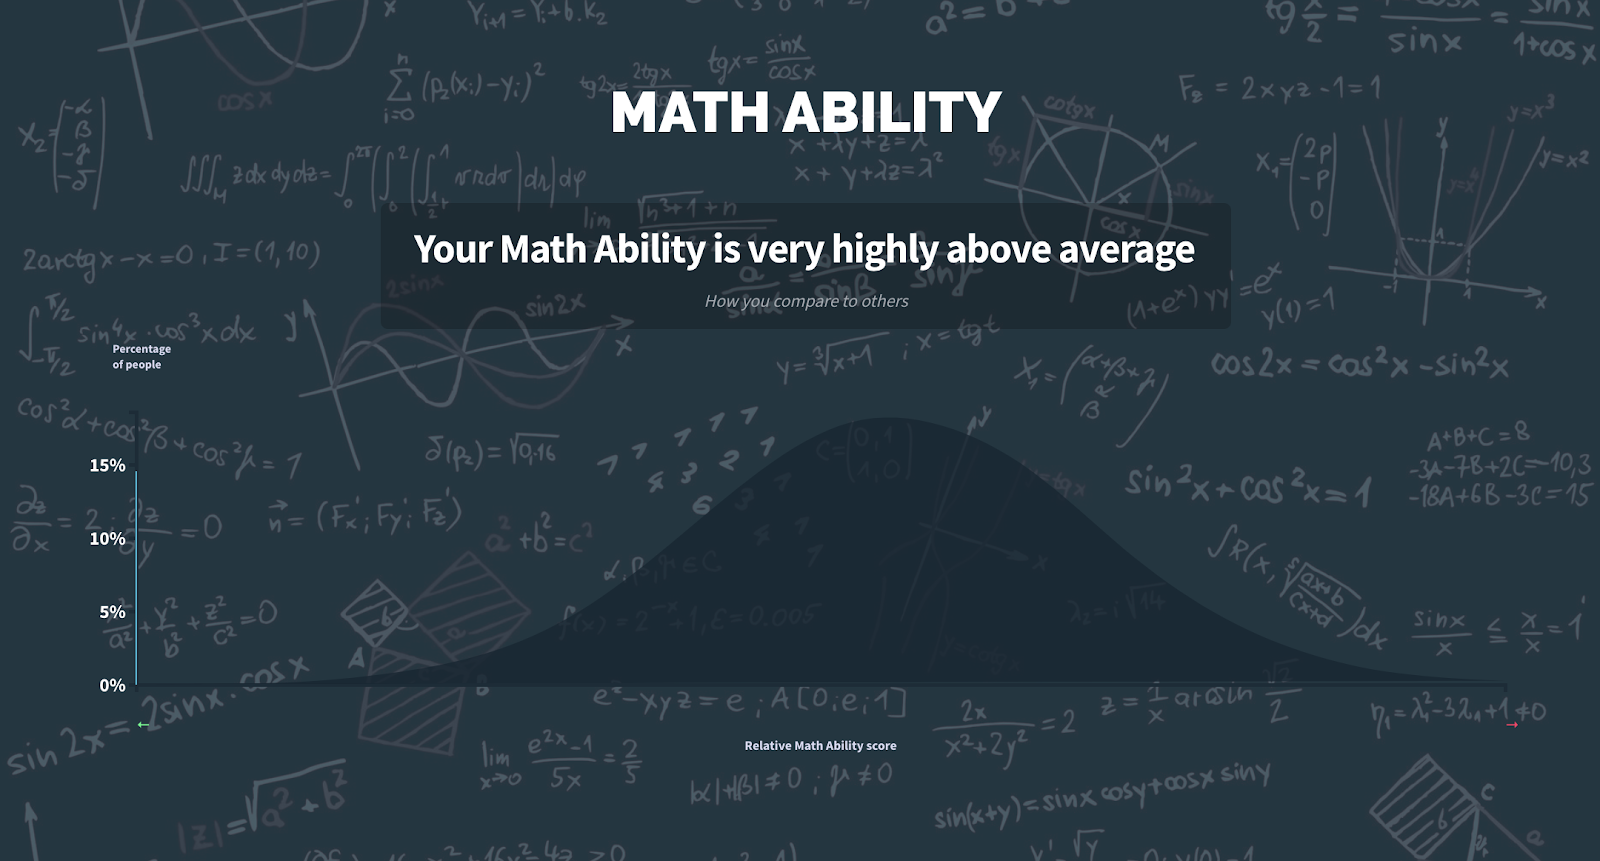 A report in the GenePlaza Math Ability app. From GenePlaza review.